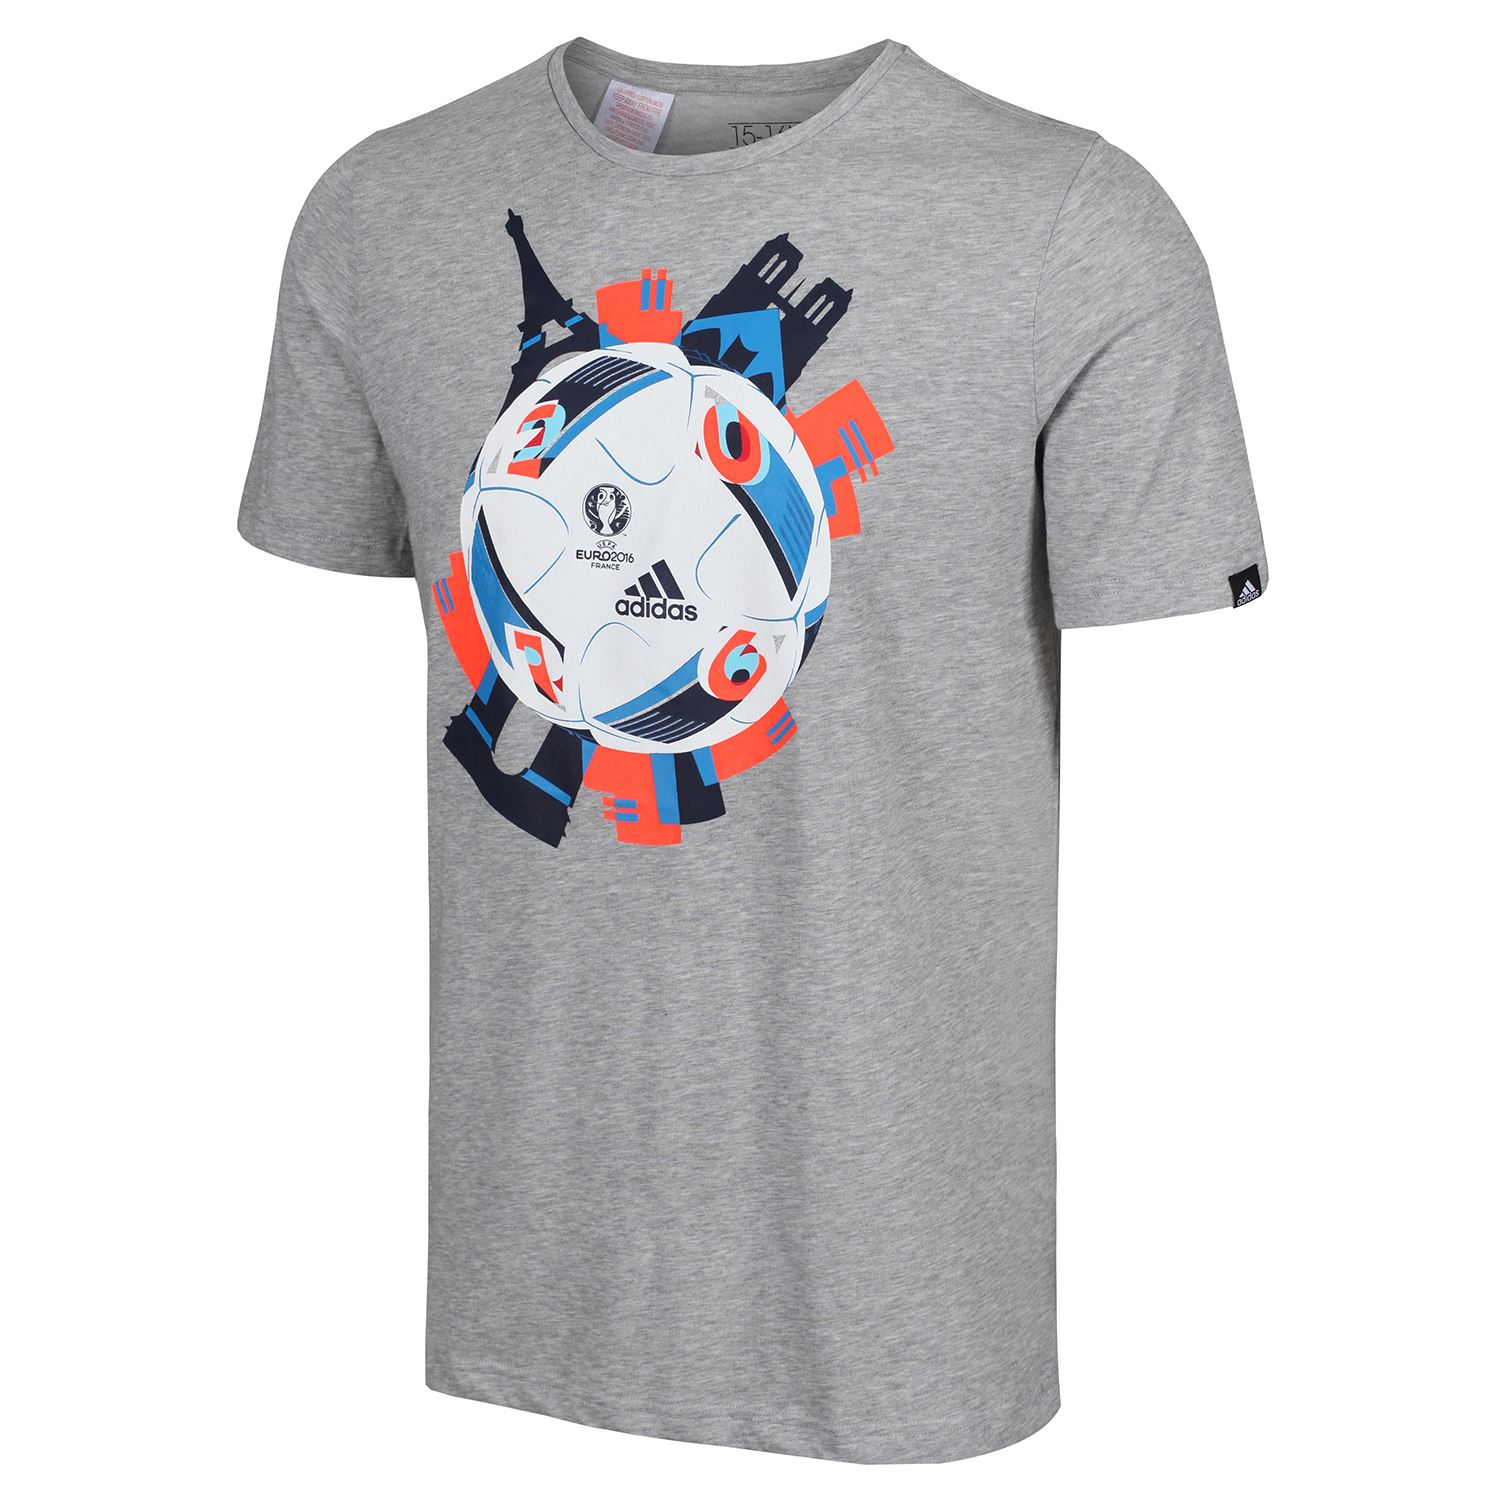 miniature 4 - Adidas-Enfants-Sports-T-Shirt-Garcons-Filles-9-10-To-15-16-ans-football-Crew